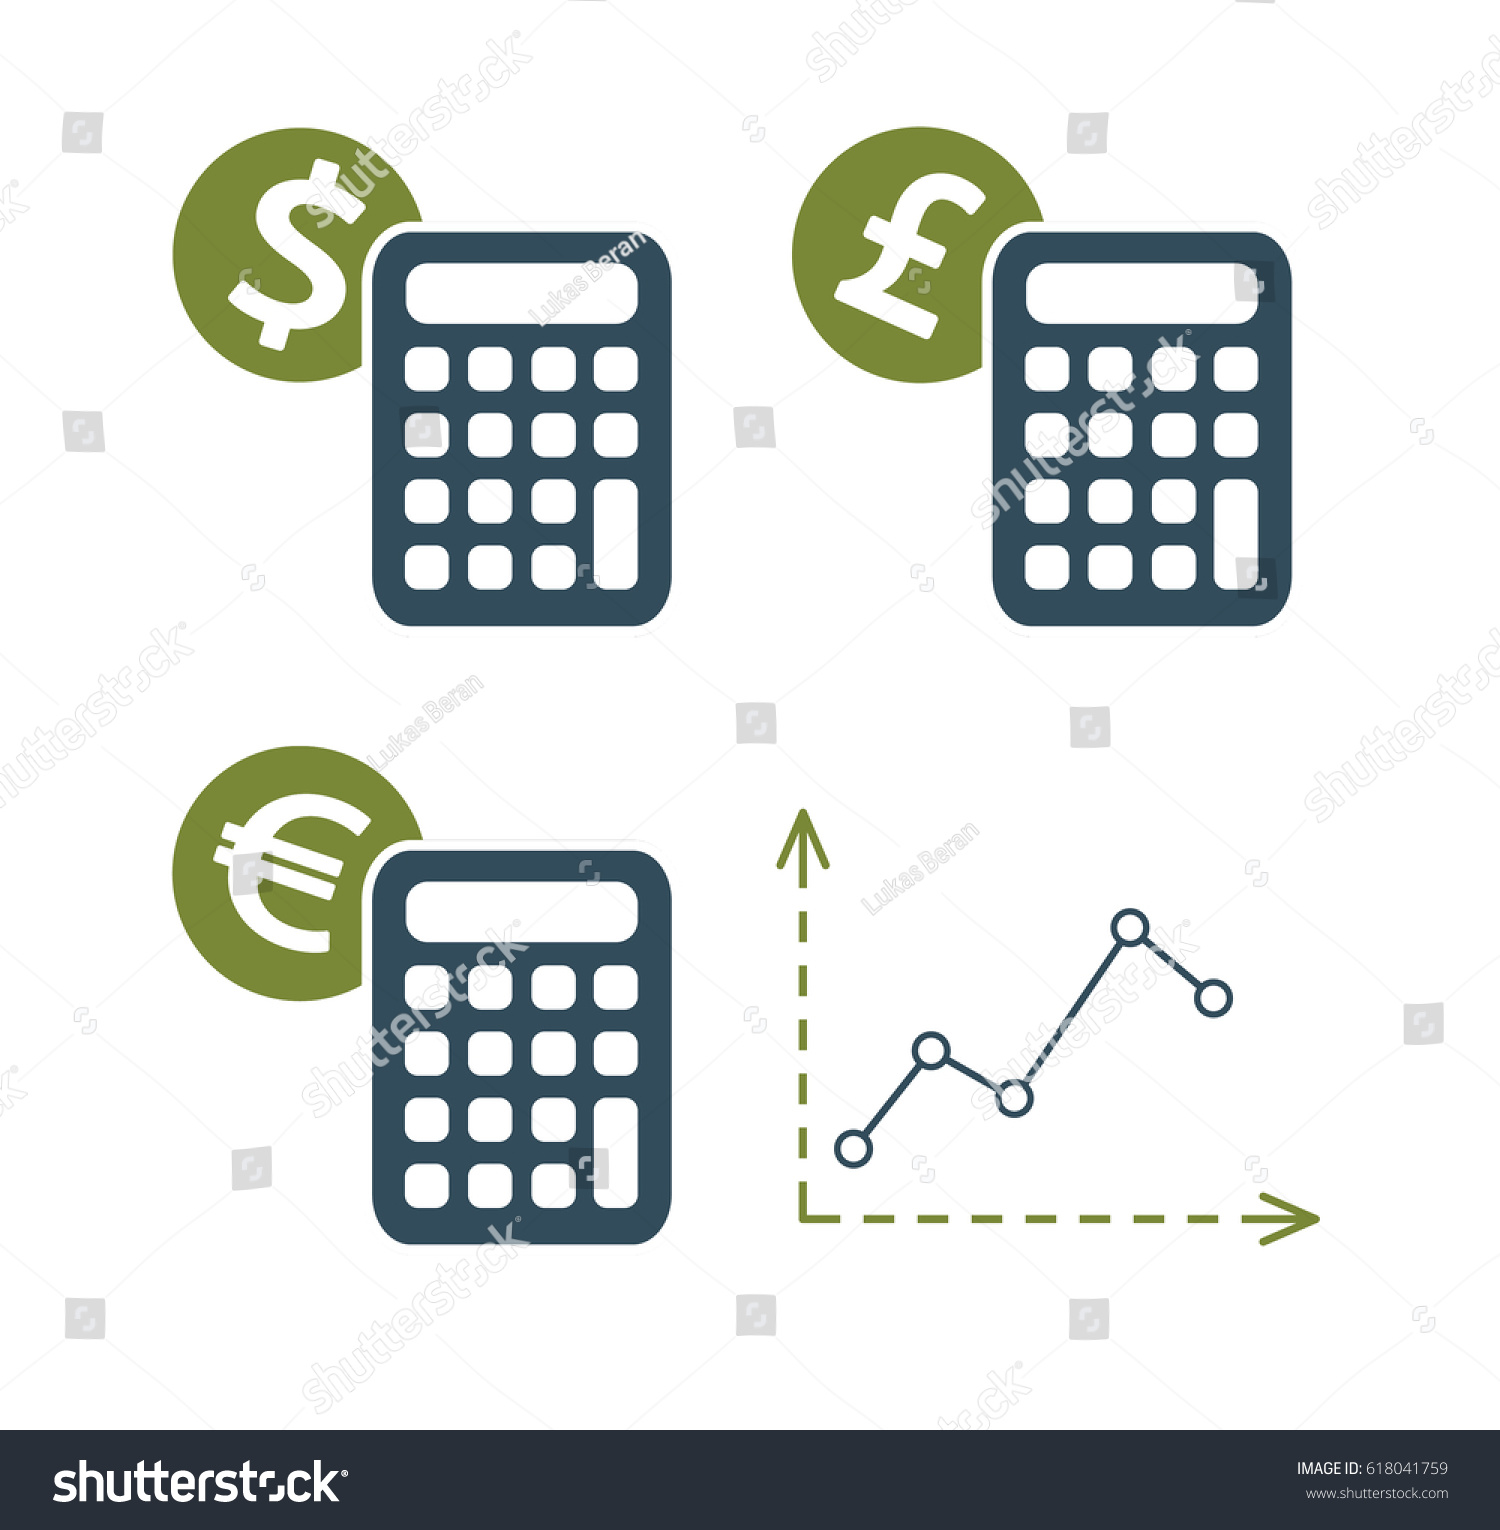 Currency symbols dollar euro pound calculator stock vector currency symbols of dollar euro and pound with calculator and growing market chart geenschuldenfo Image collections